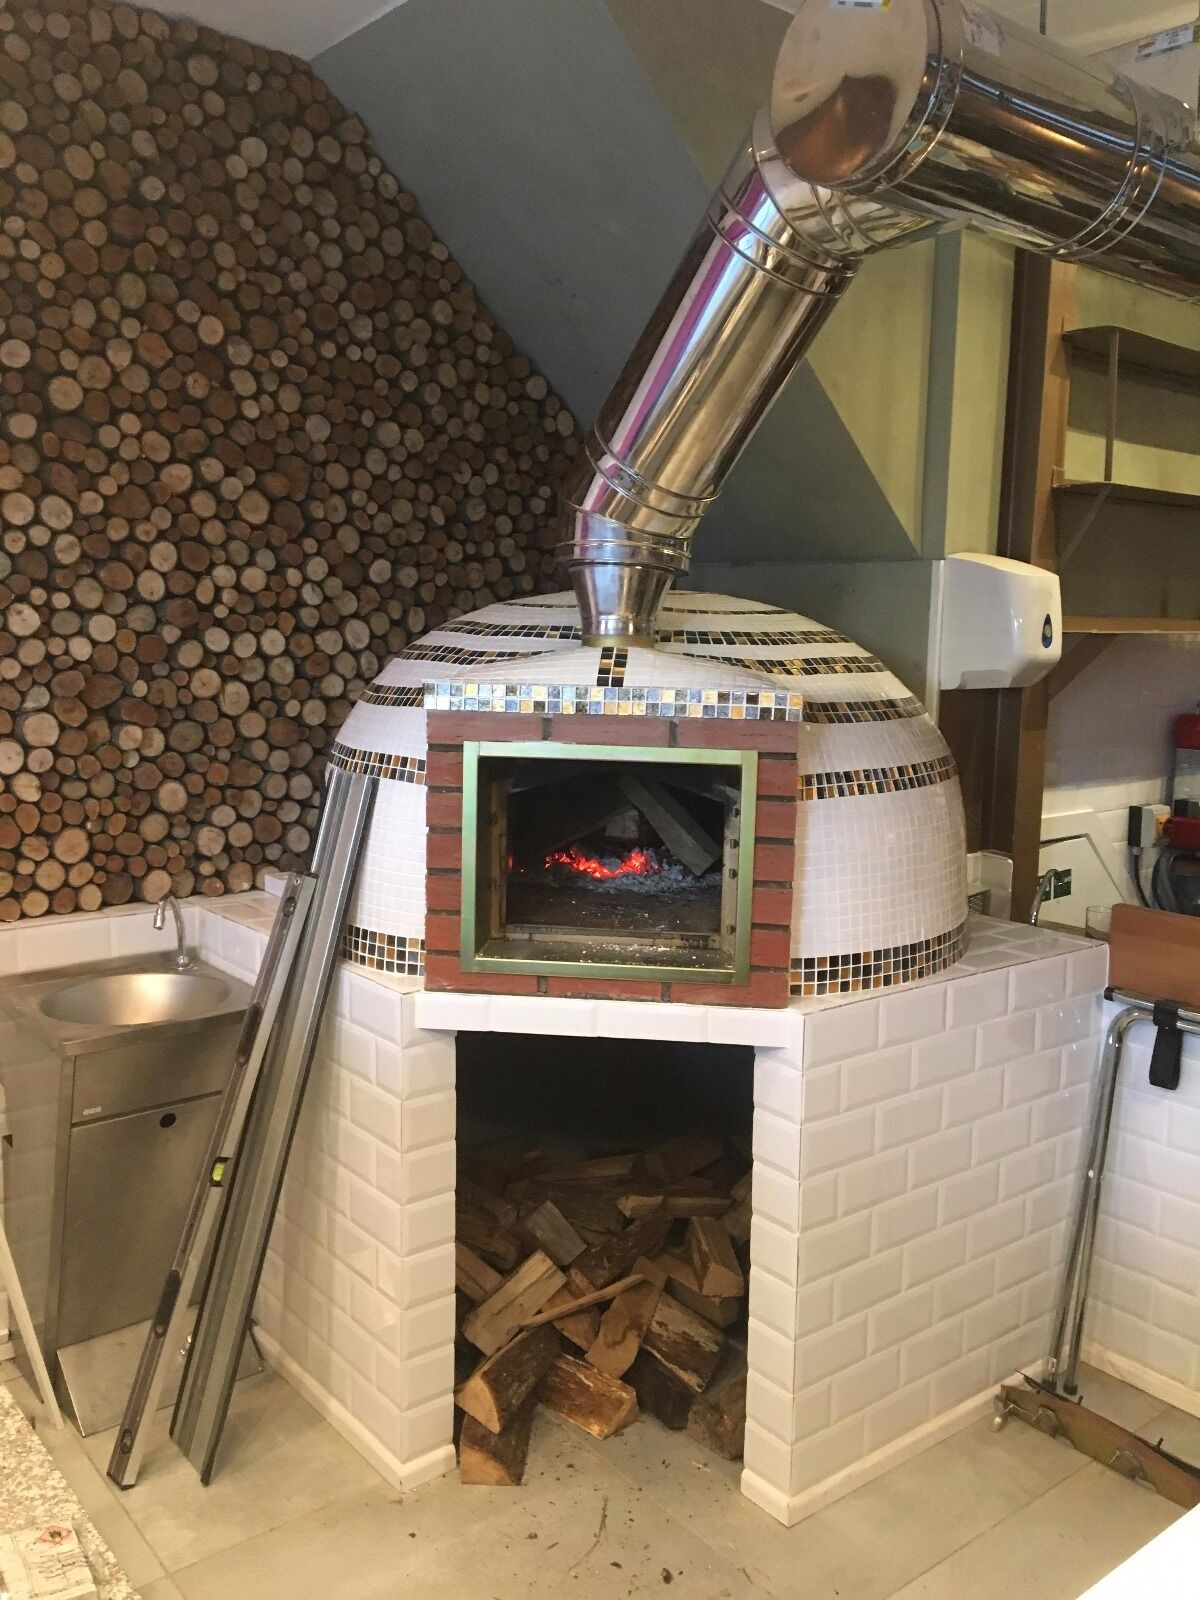 commercial brick wood fired pizza oven amigo ovens uk